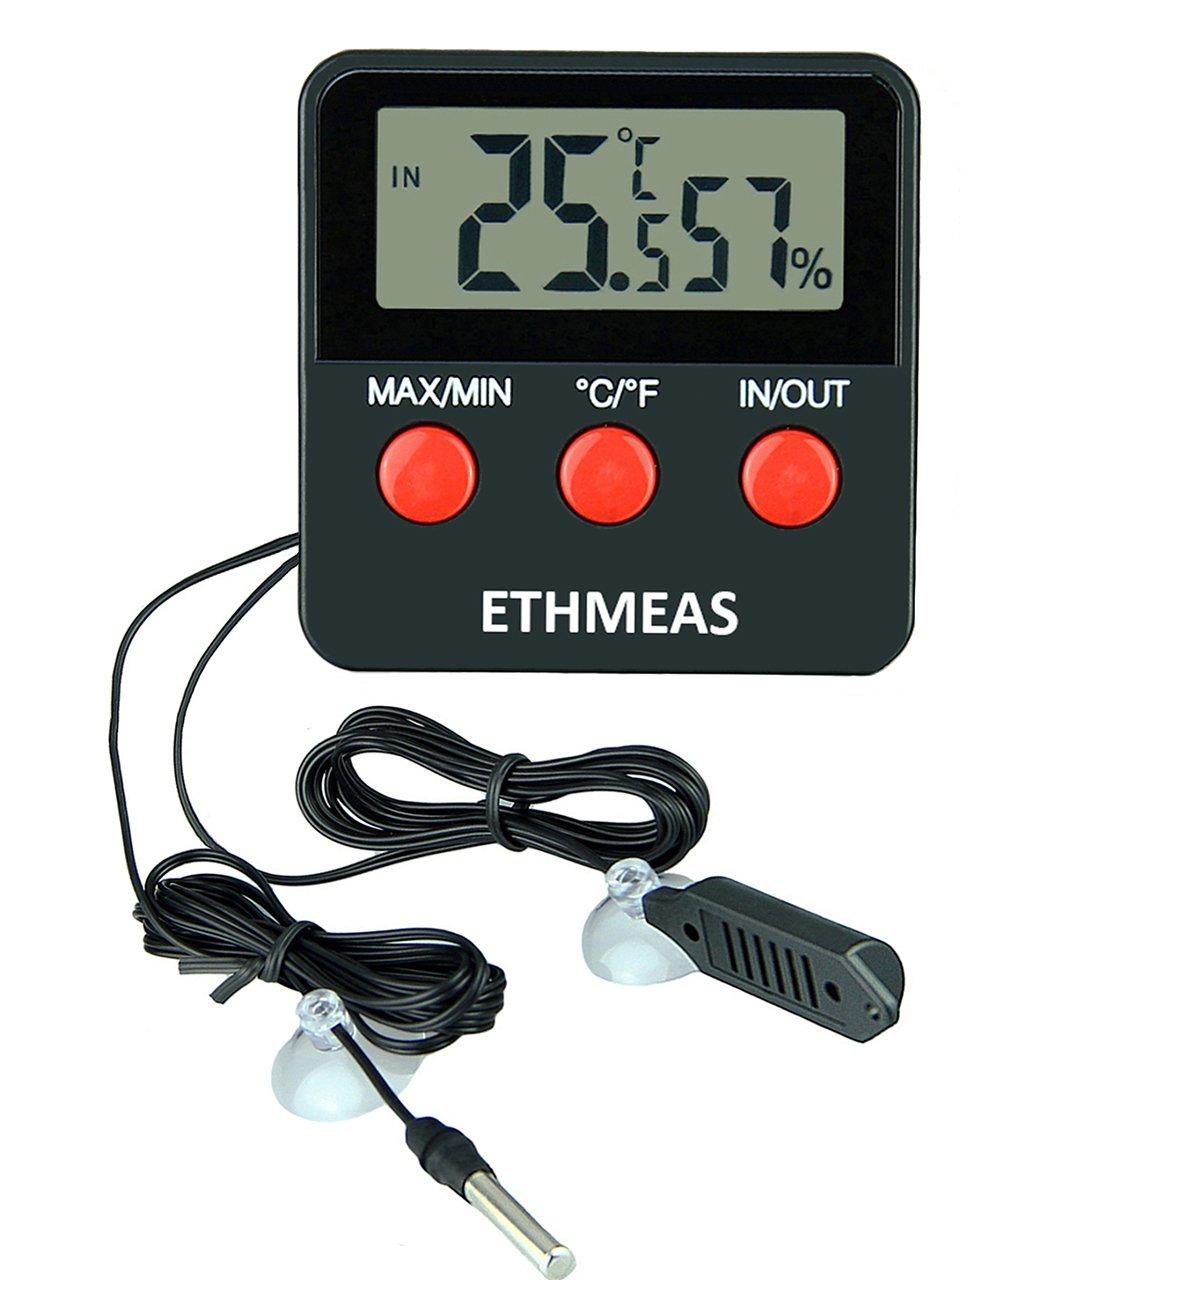 ETHMEAS Digital Thermometer and Hygrometer for Reptiles Terrarium pet keeping, Digital Indoor Outdoor Temperature Gauge and Humidity